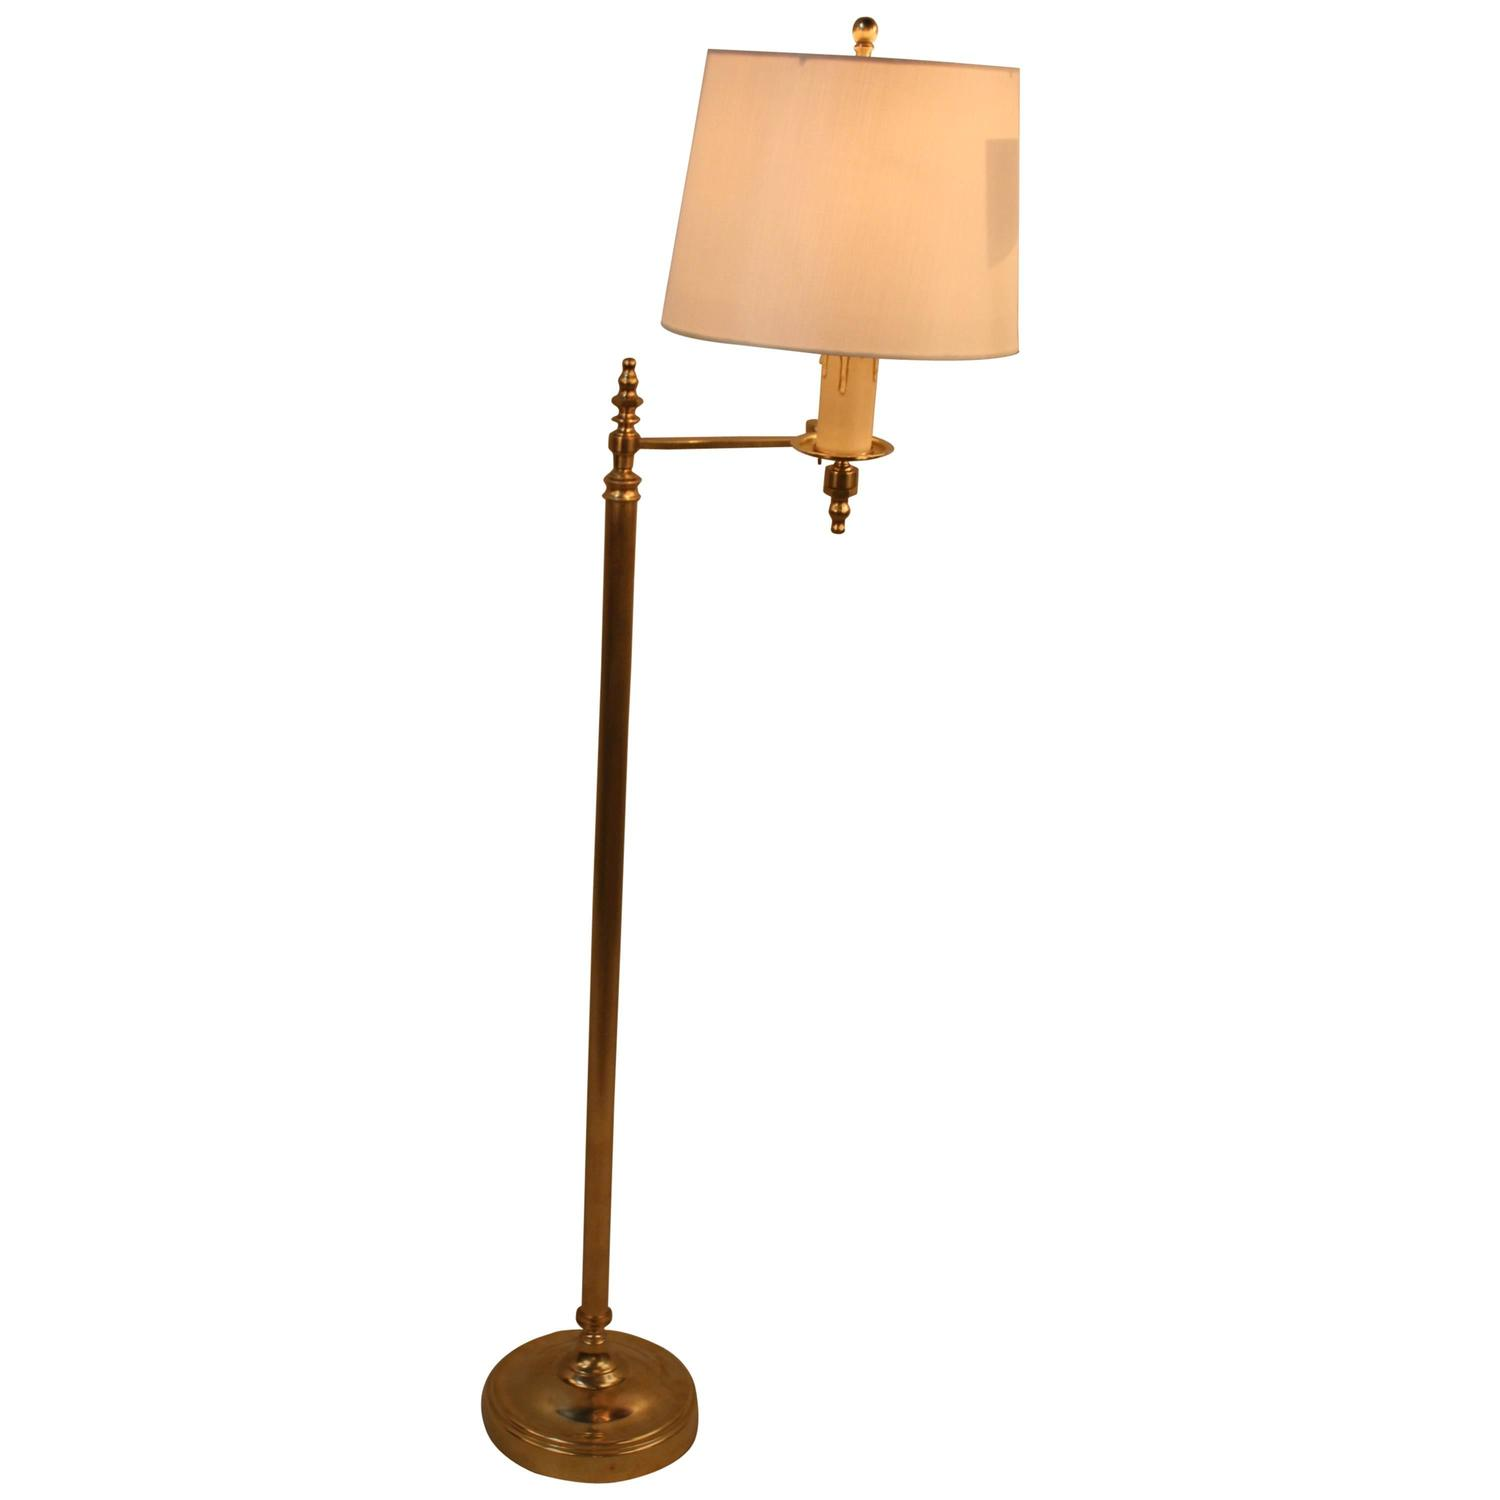 French Bronze Adjustable Floor Lamp at 1stdibs